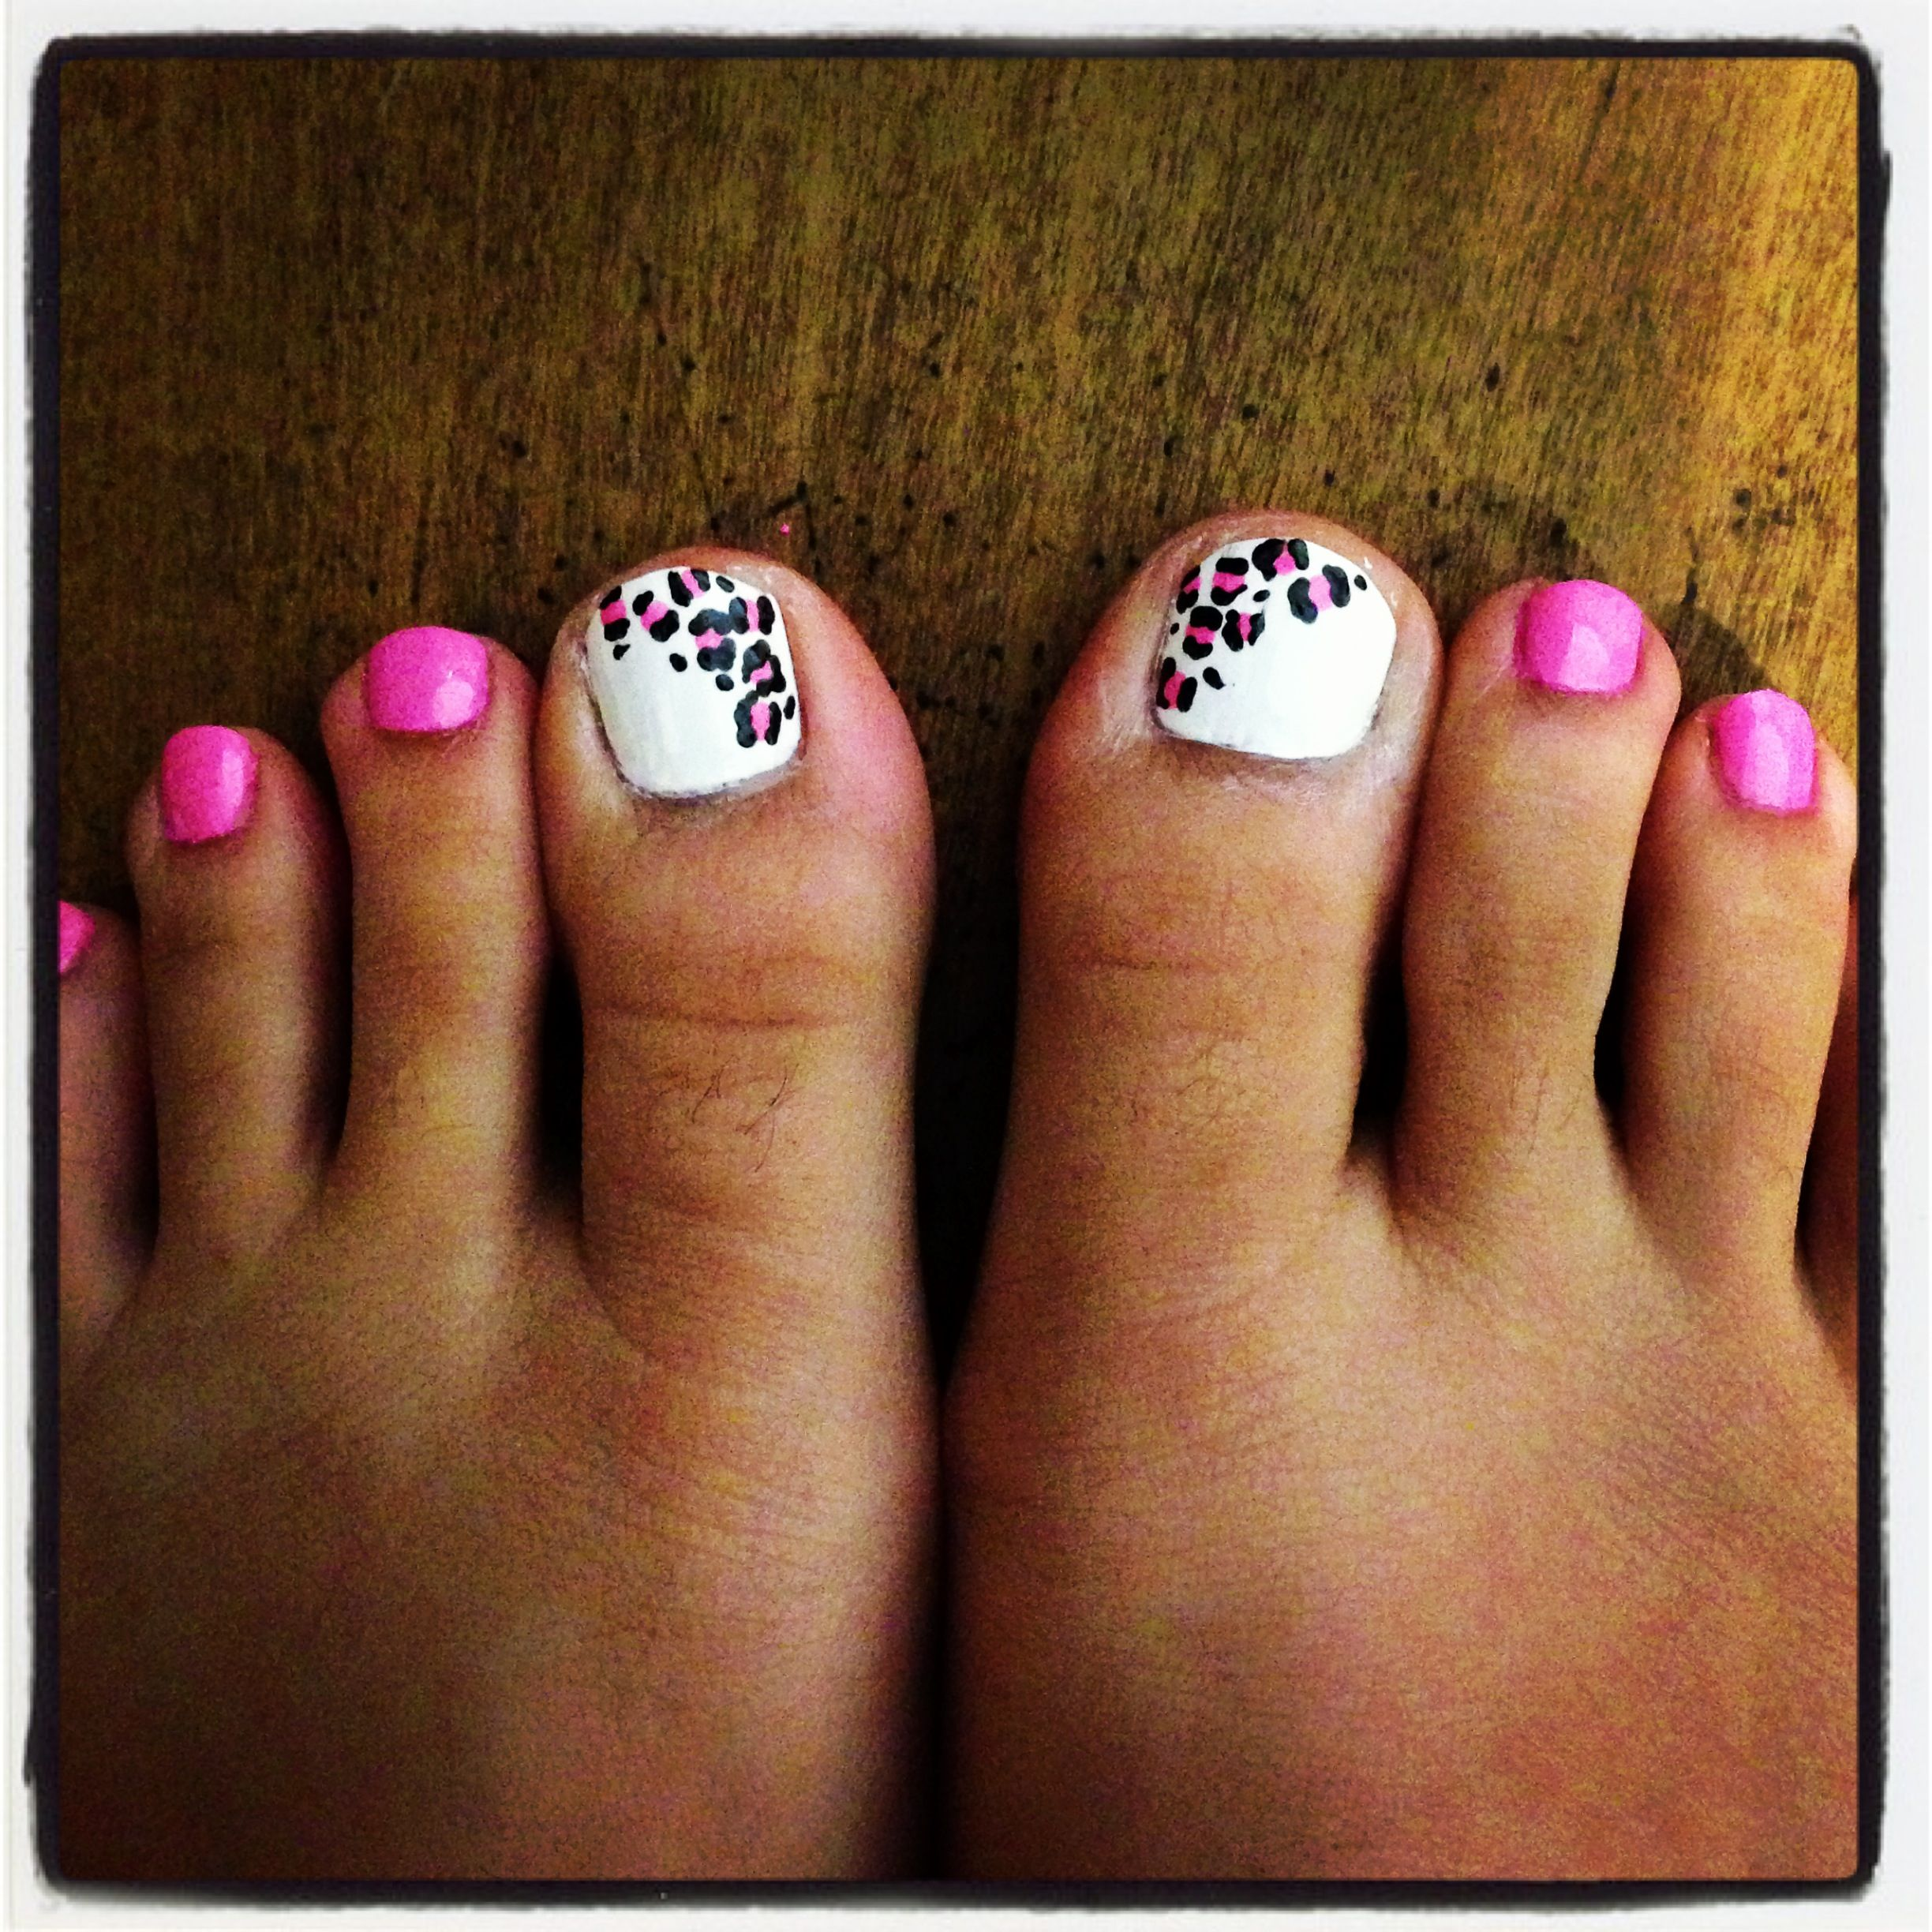 Girly Nail Art Designs: Best 25+ Pink Toes Ideas On Pinterest